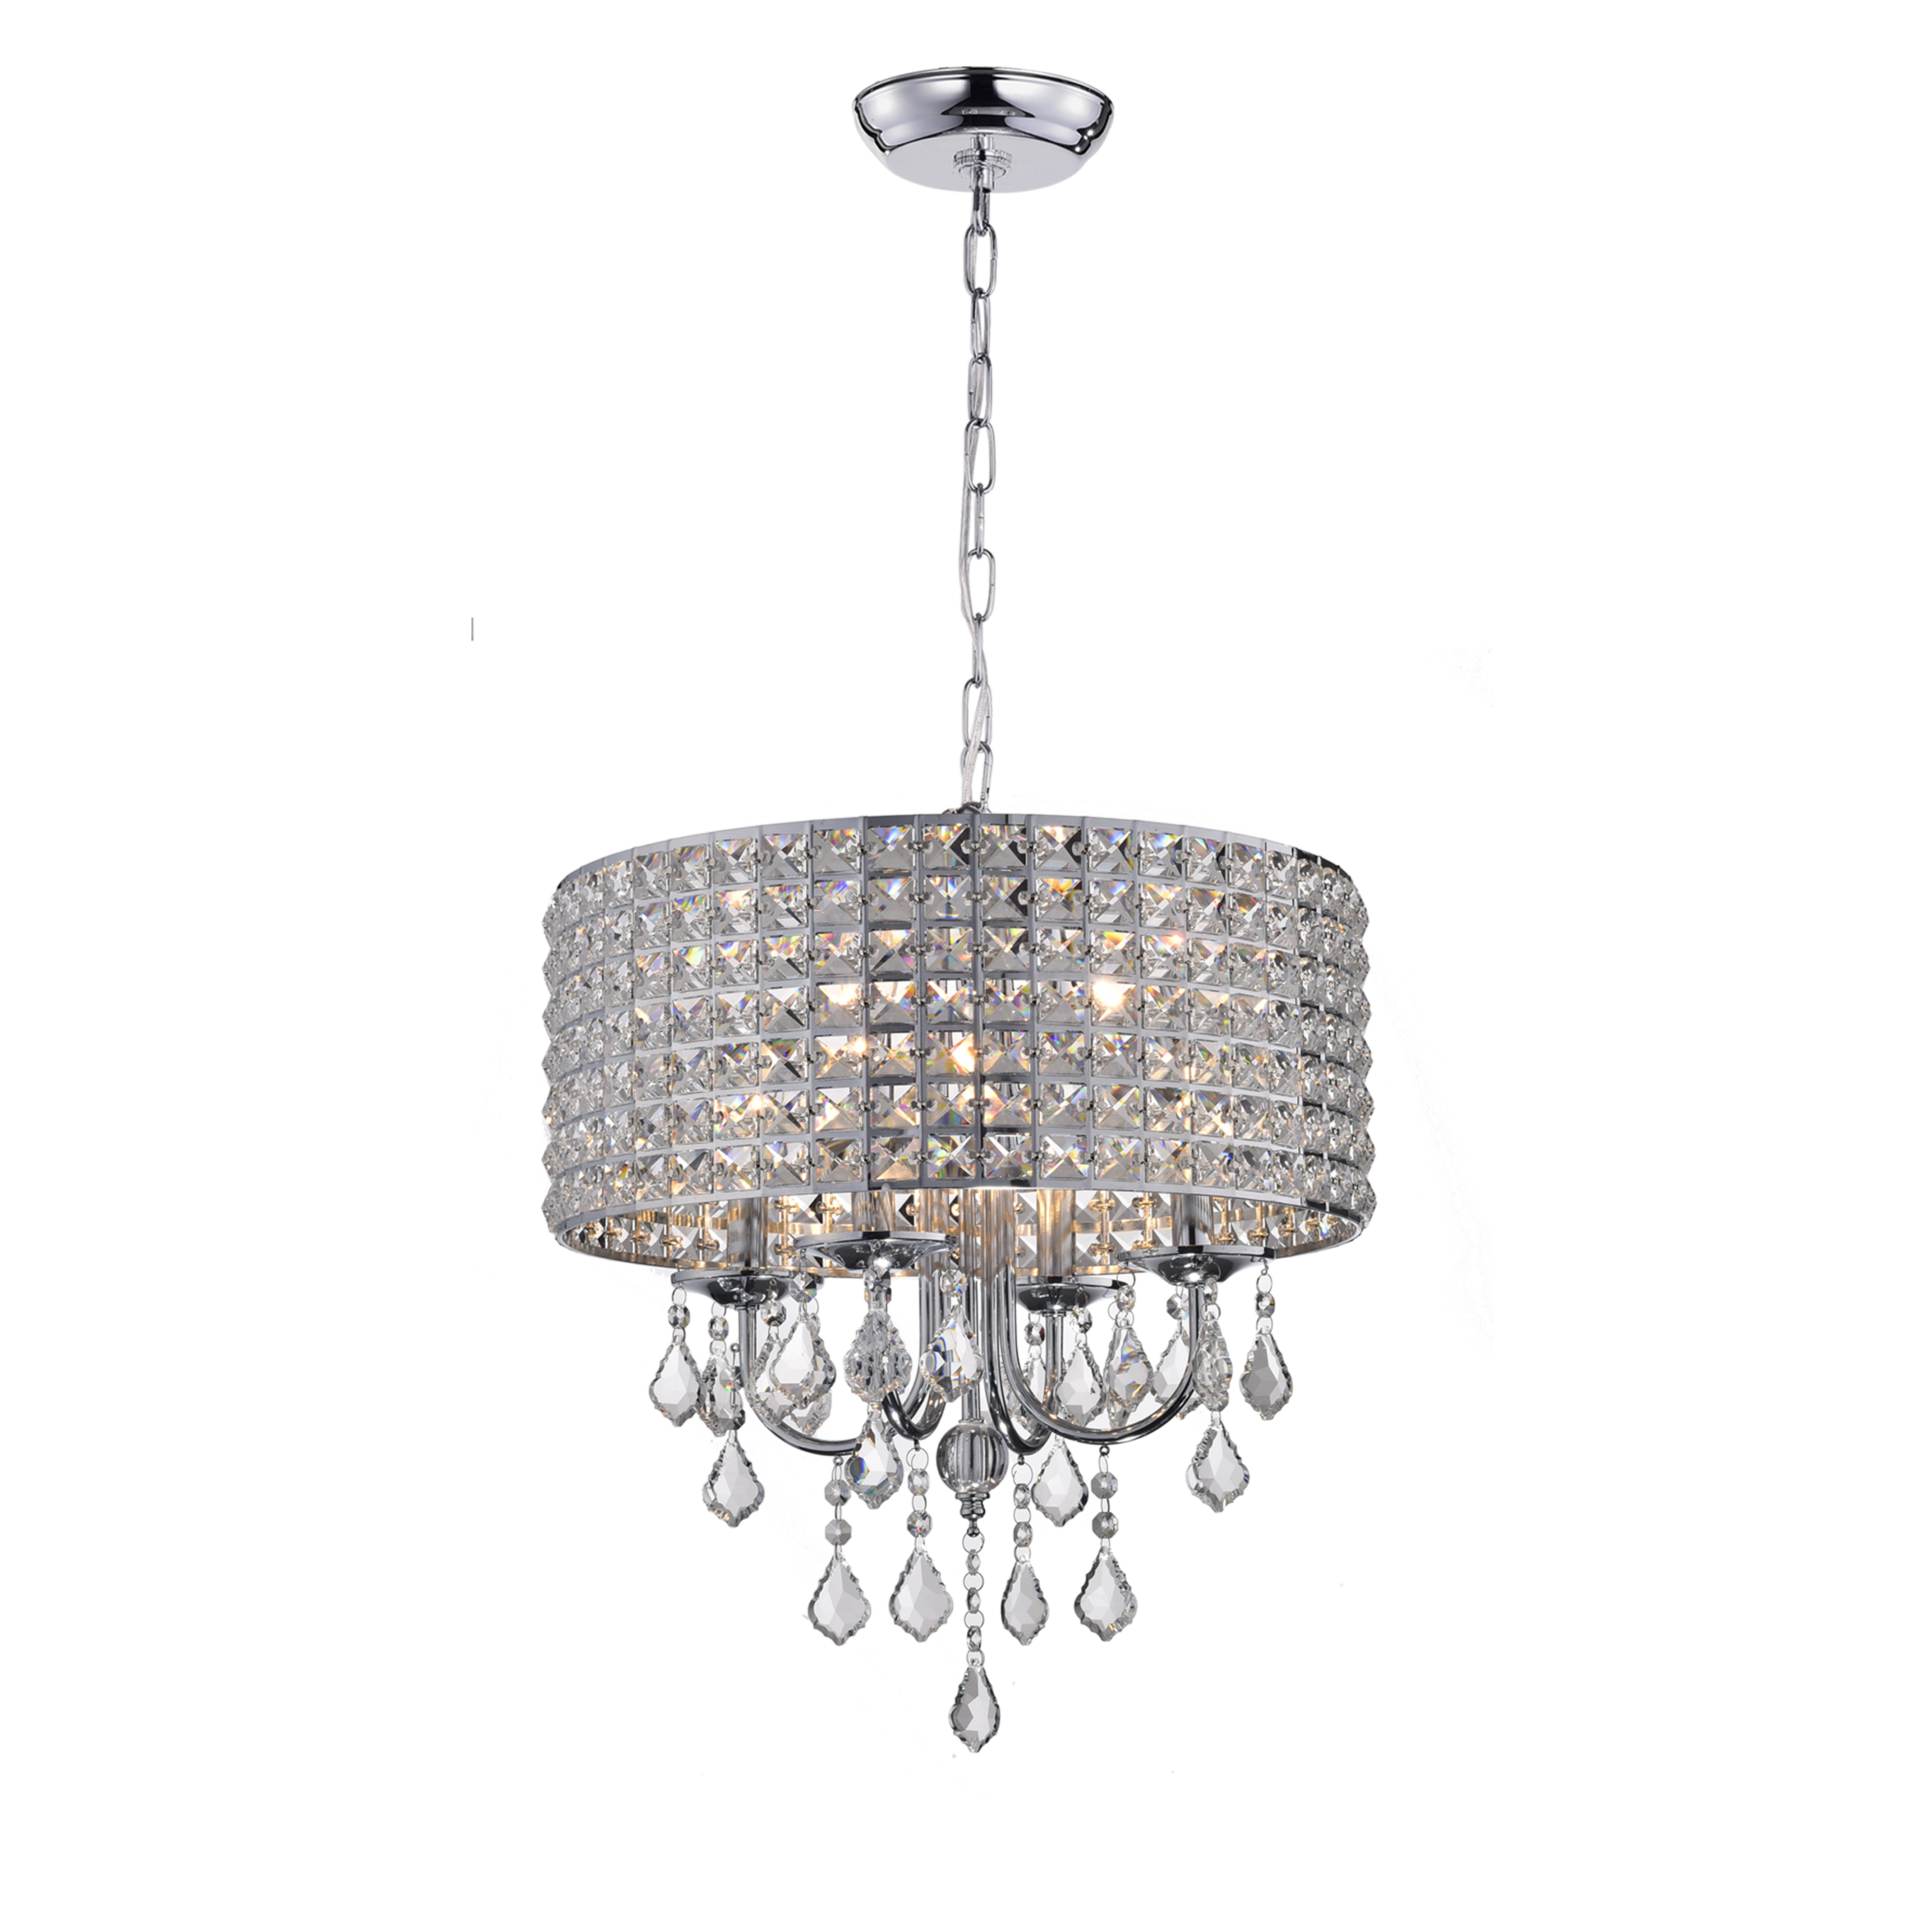 Albano 4 Light Crystal Chandelier With Regard To Famous Gisselle 4 Light Drum Chandeliers (View 3 of 25)